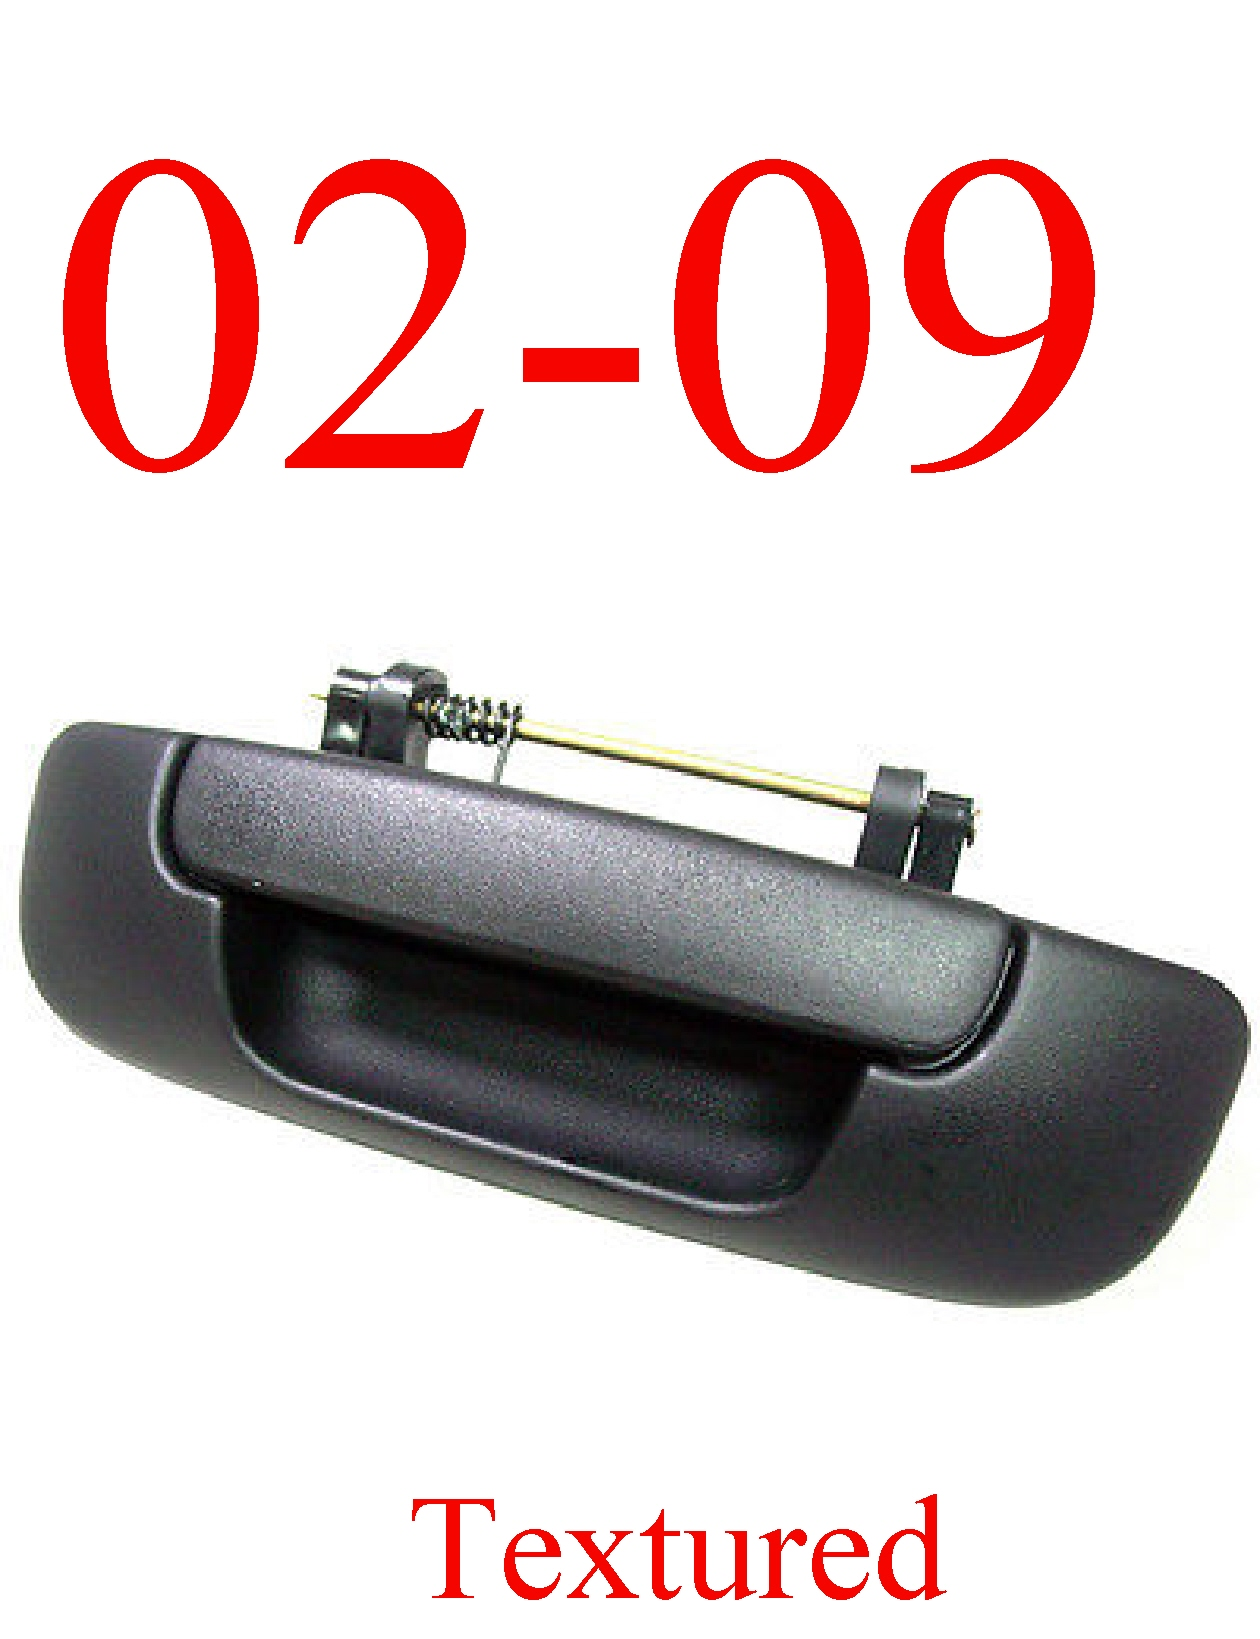 02-09 Dodge Textured Tail Gate Handle